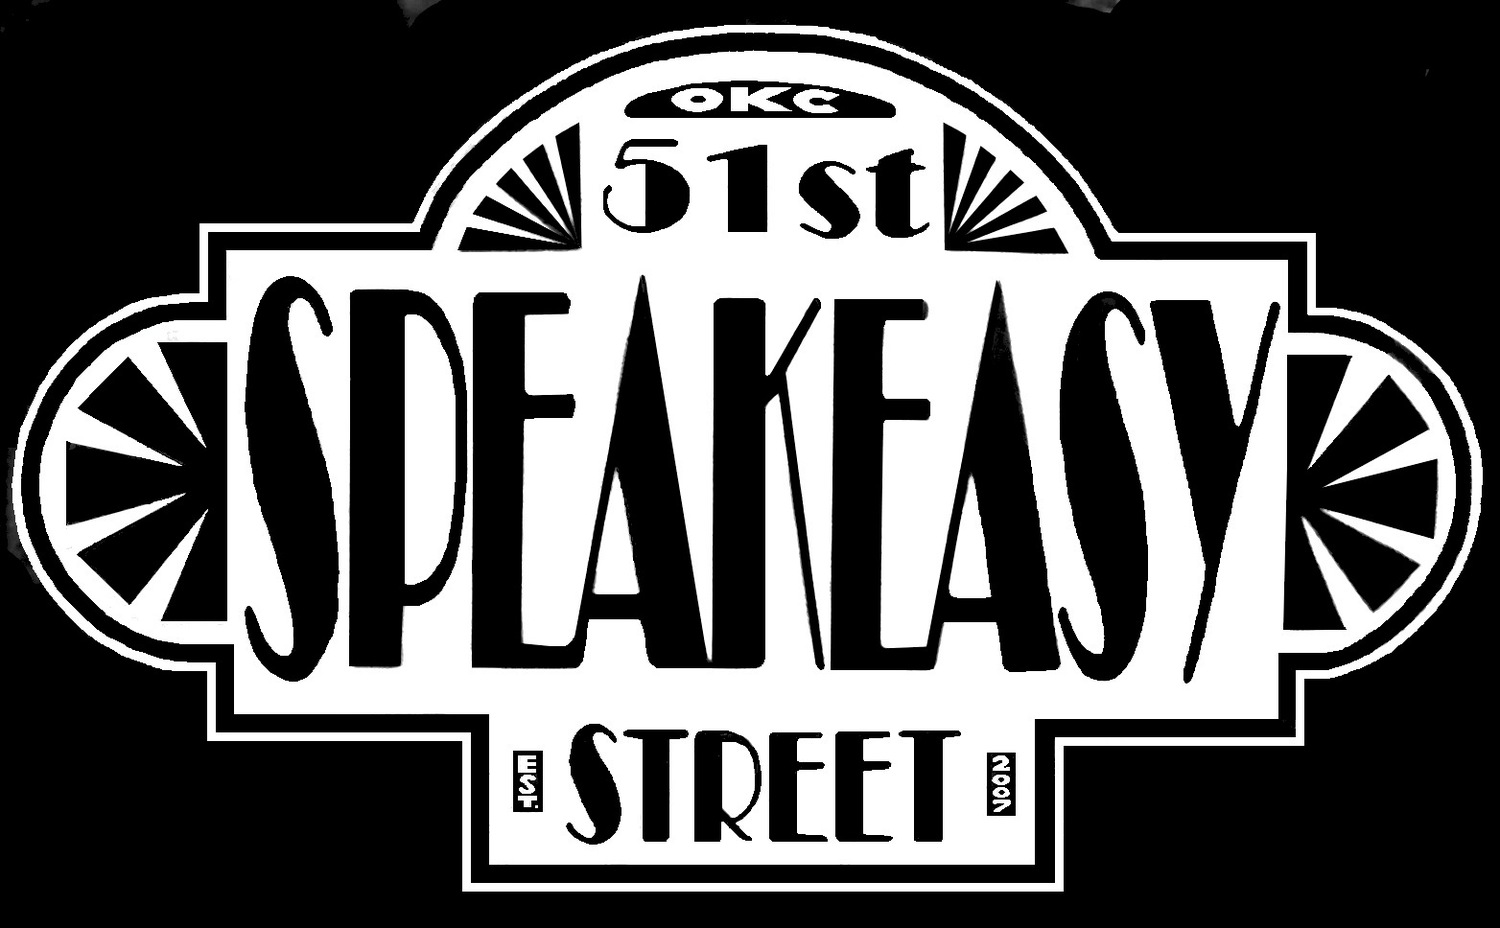 51st Street Speakeasy